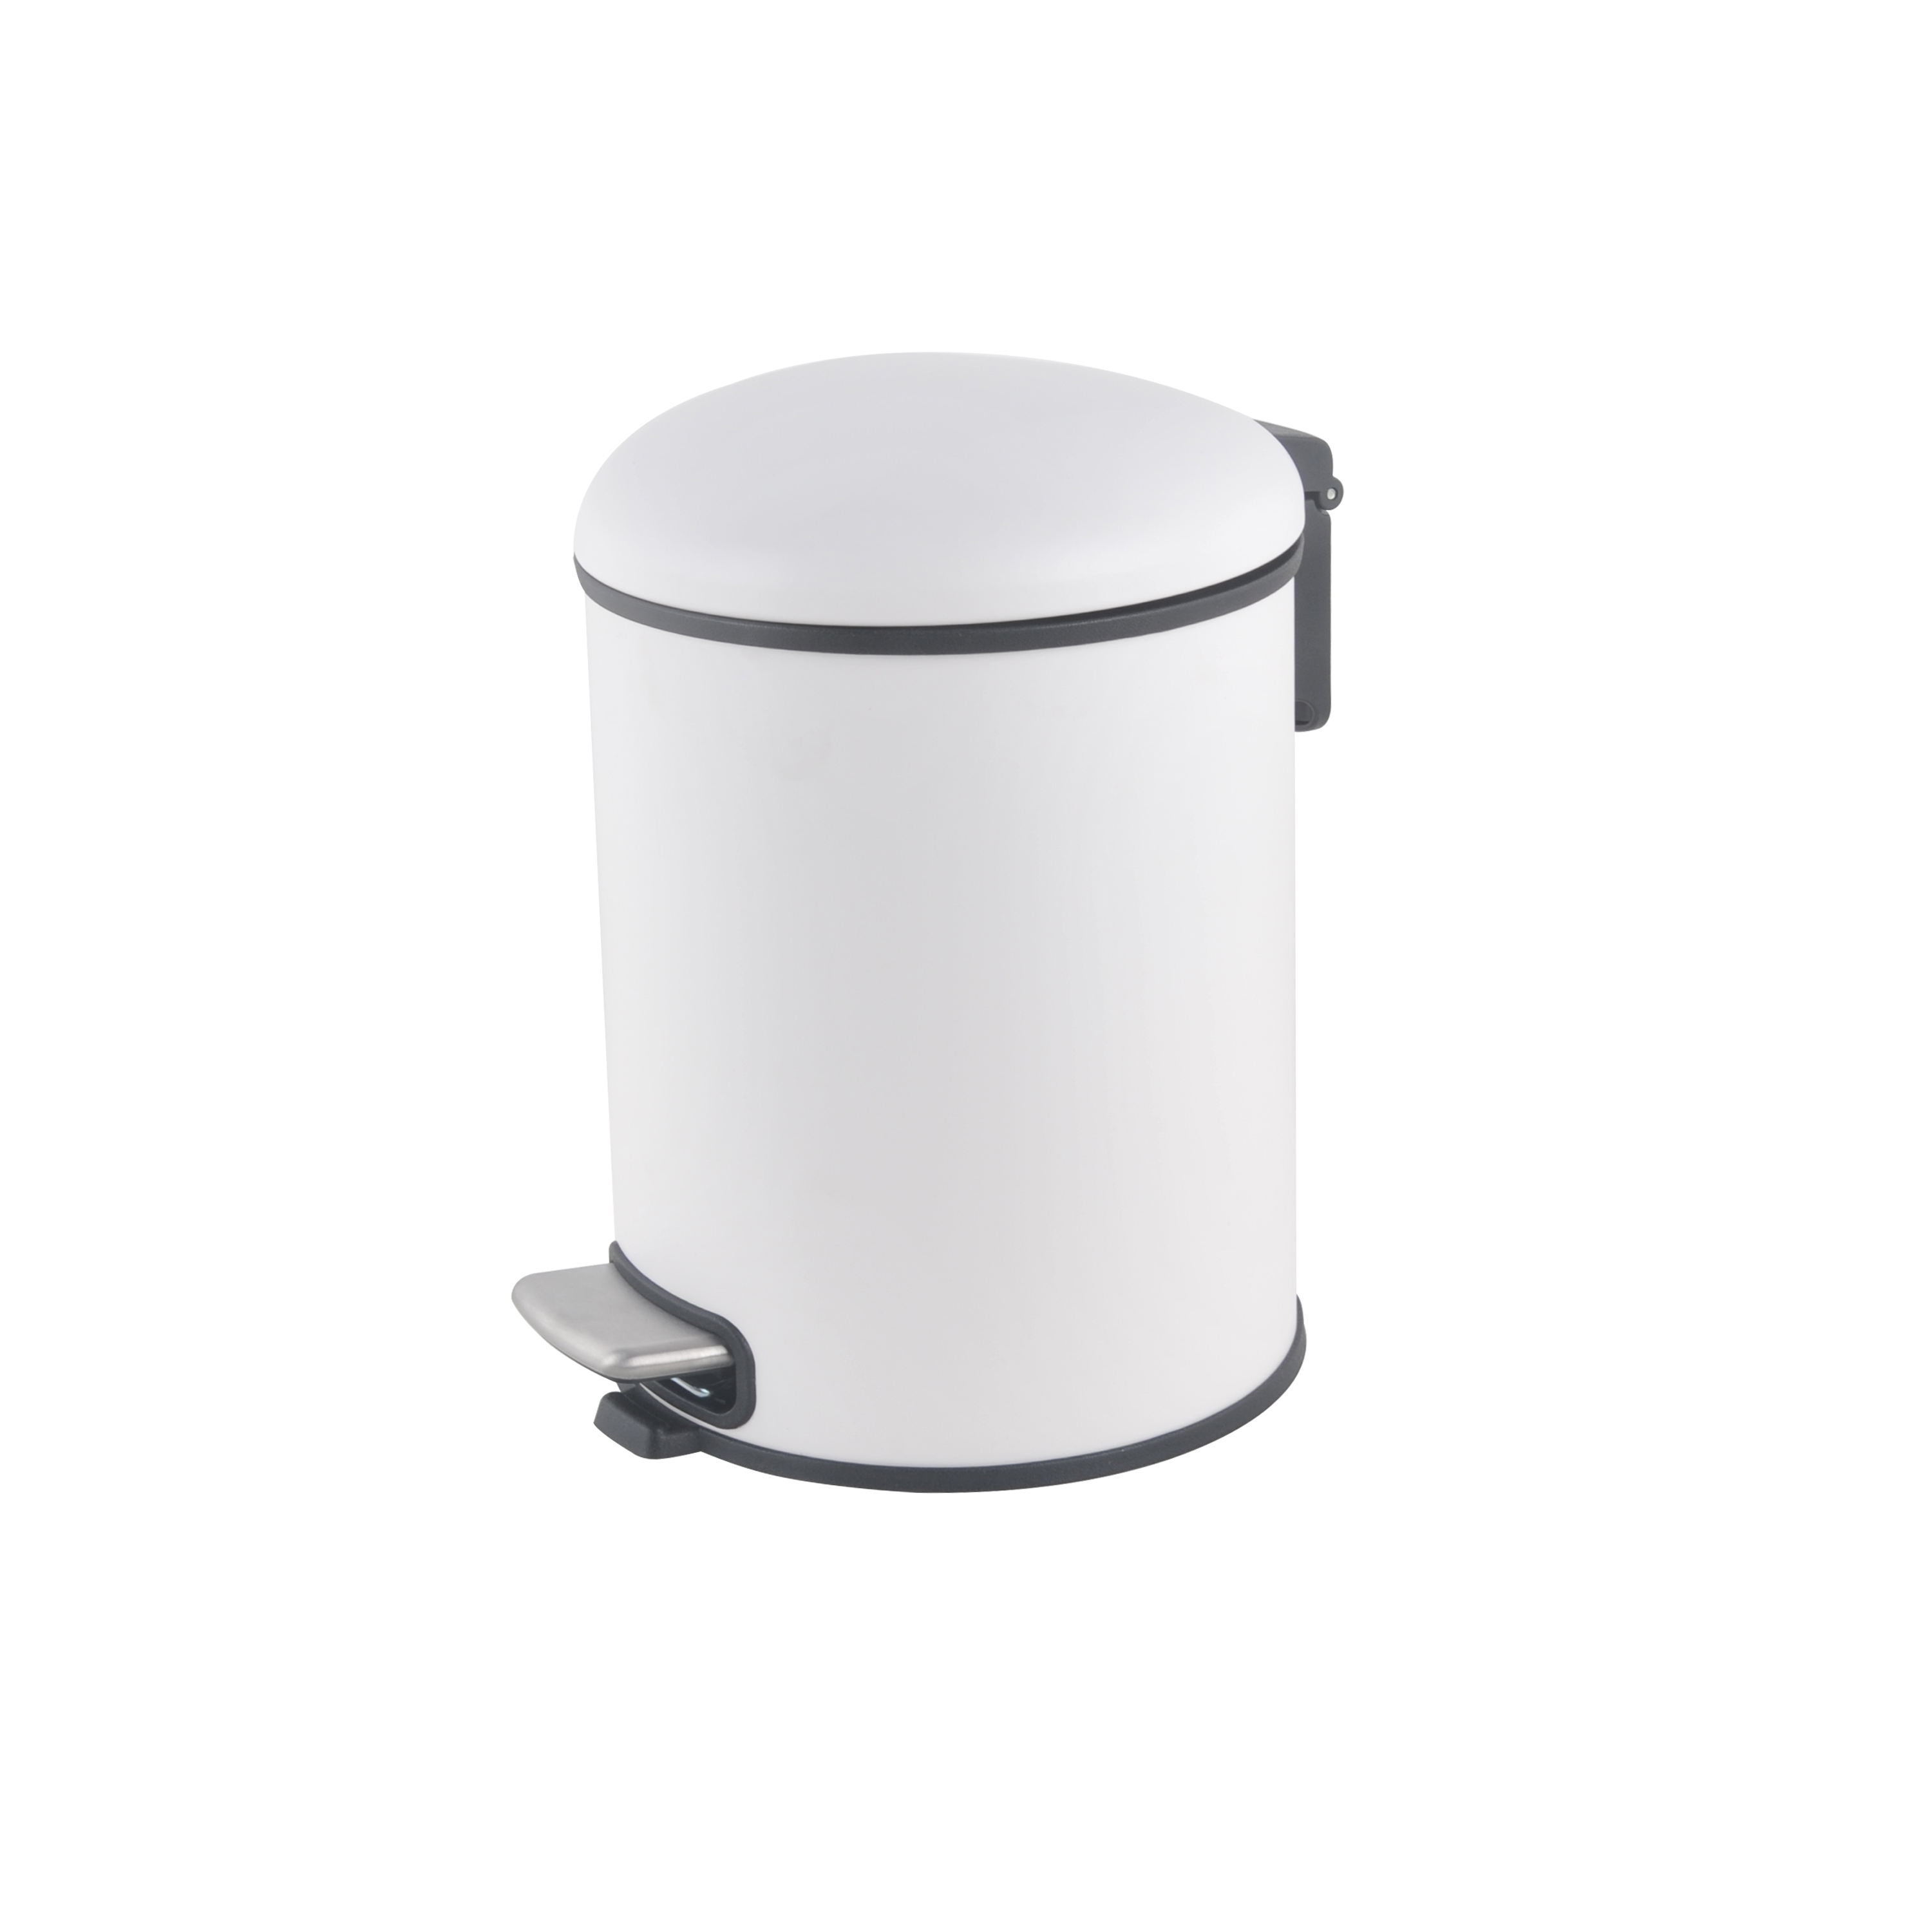 Victory Latest design 5 Liter Foot Pedal Bathroom Innovative Waste Bins Dustbin bathroom bin